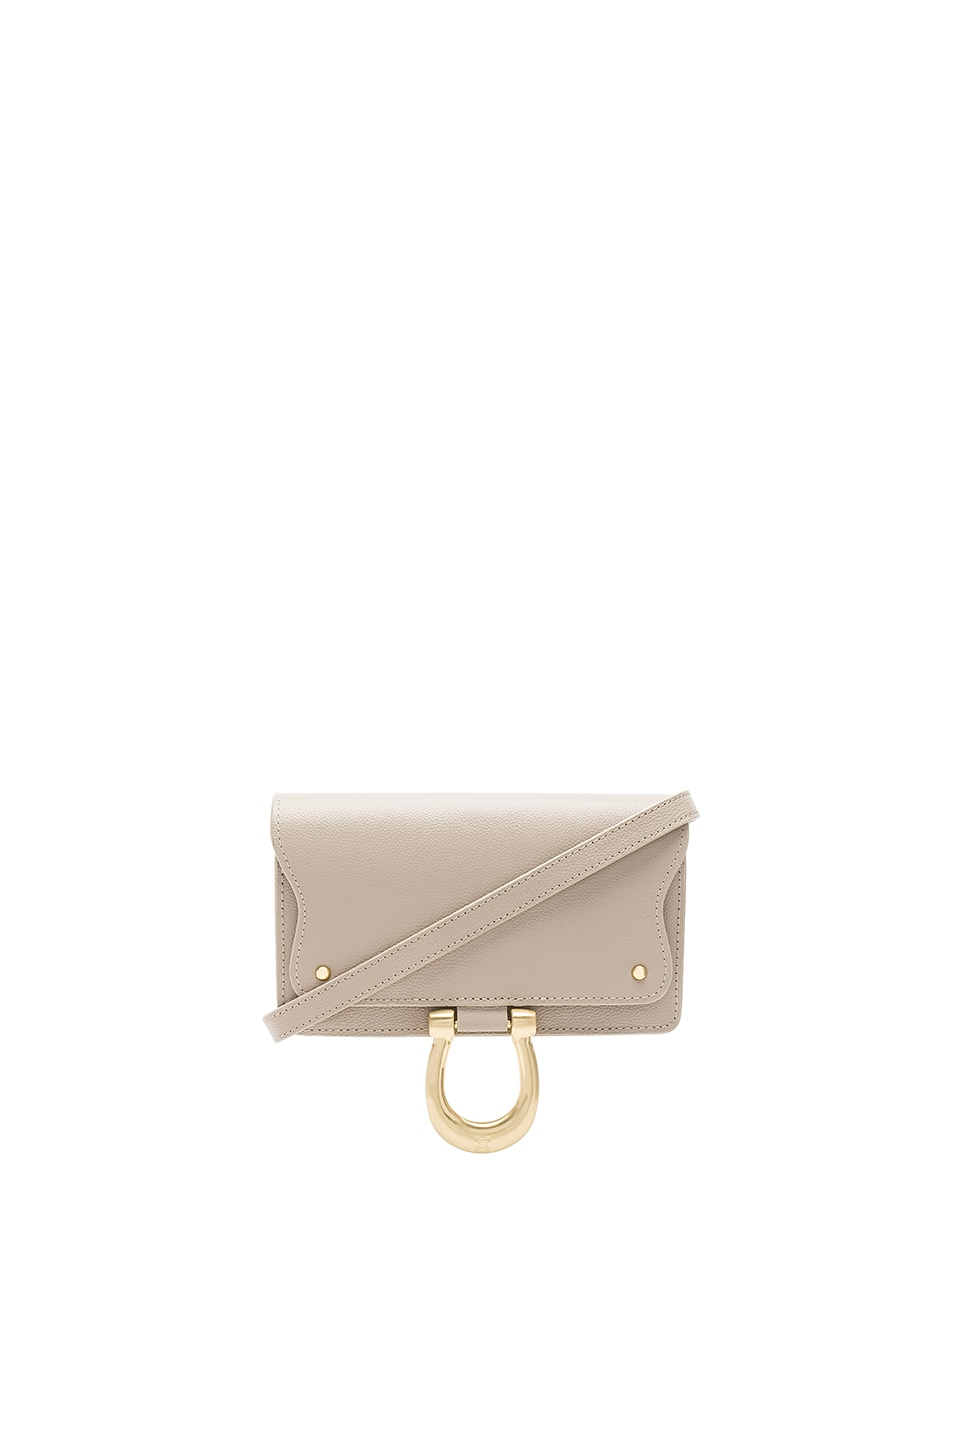 The Paris Mini Crossbody